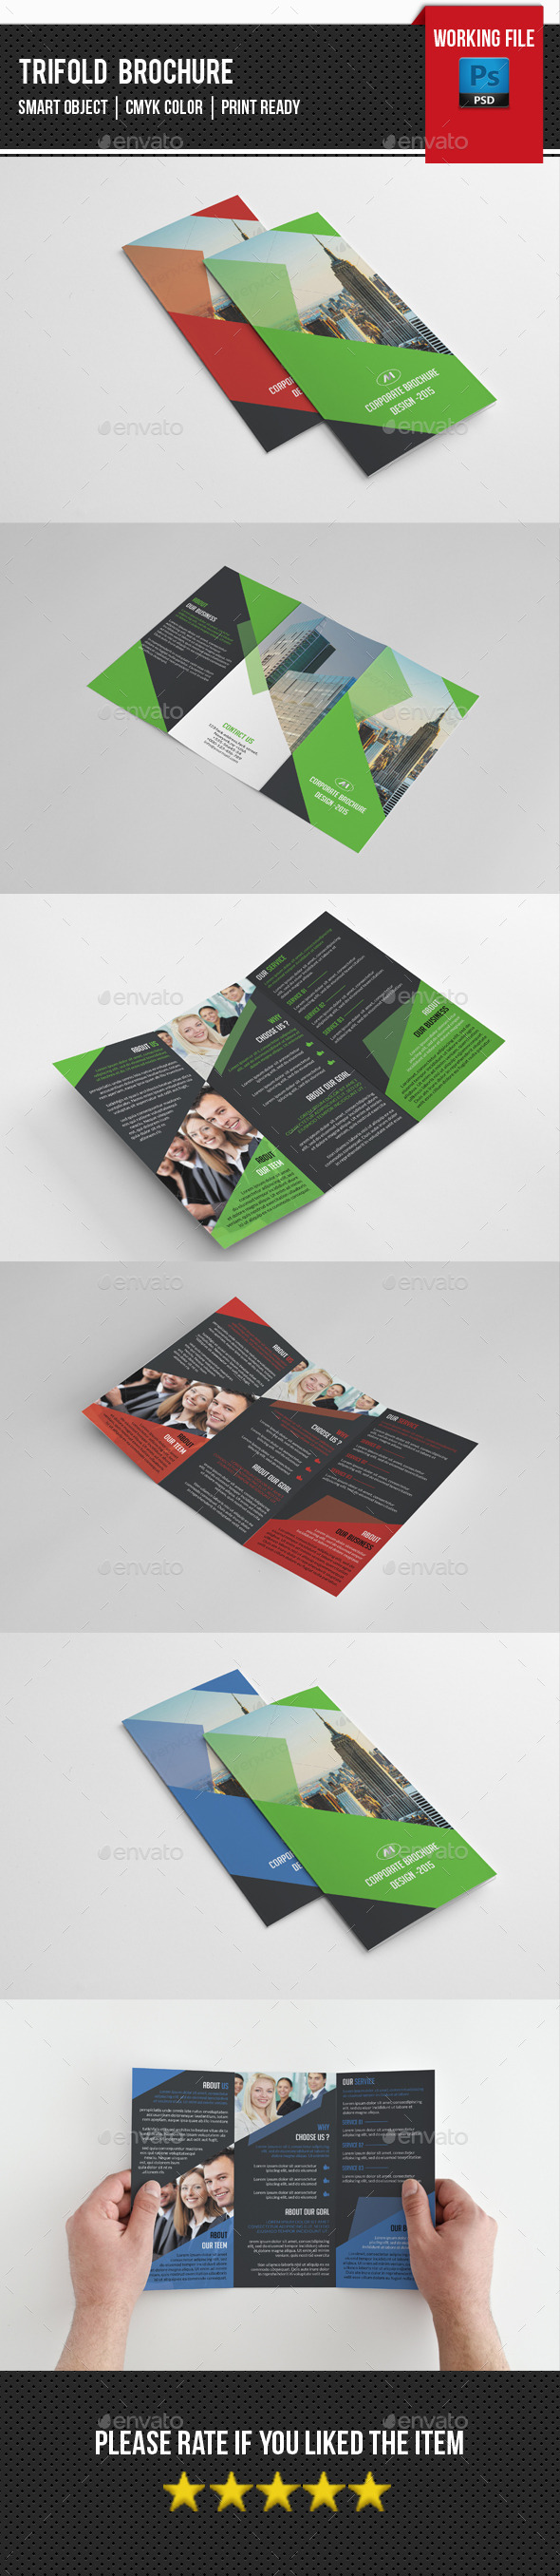 Corporate Trifold Brochure-V236 - Corporate Brochures